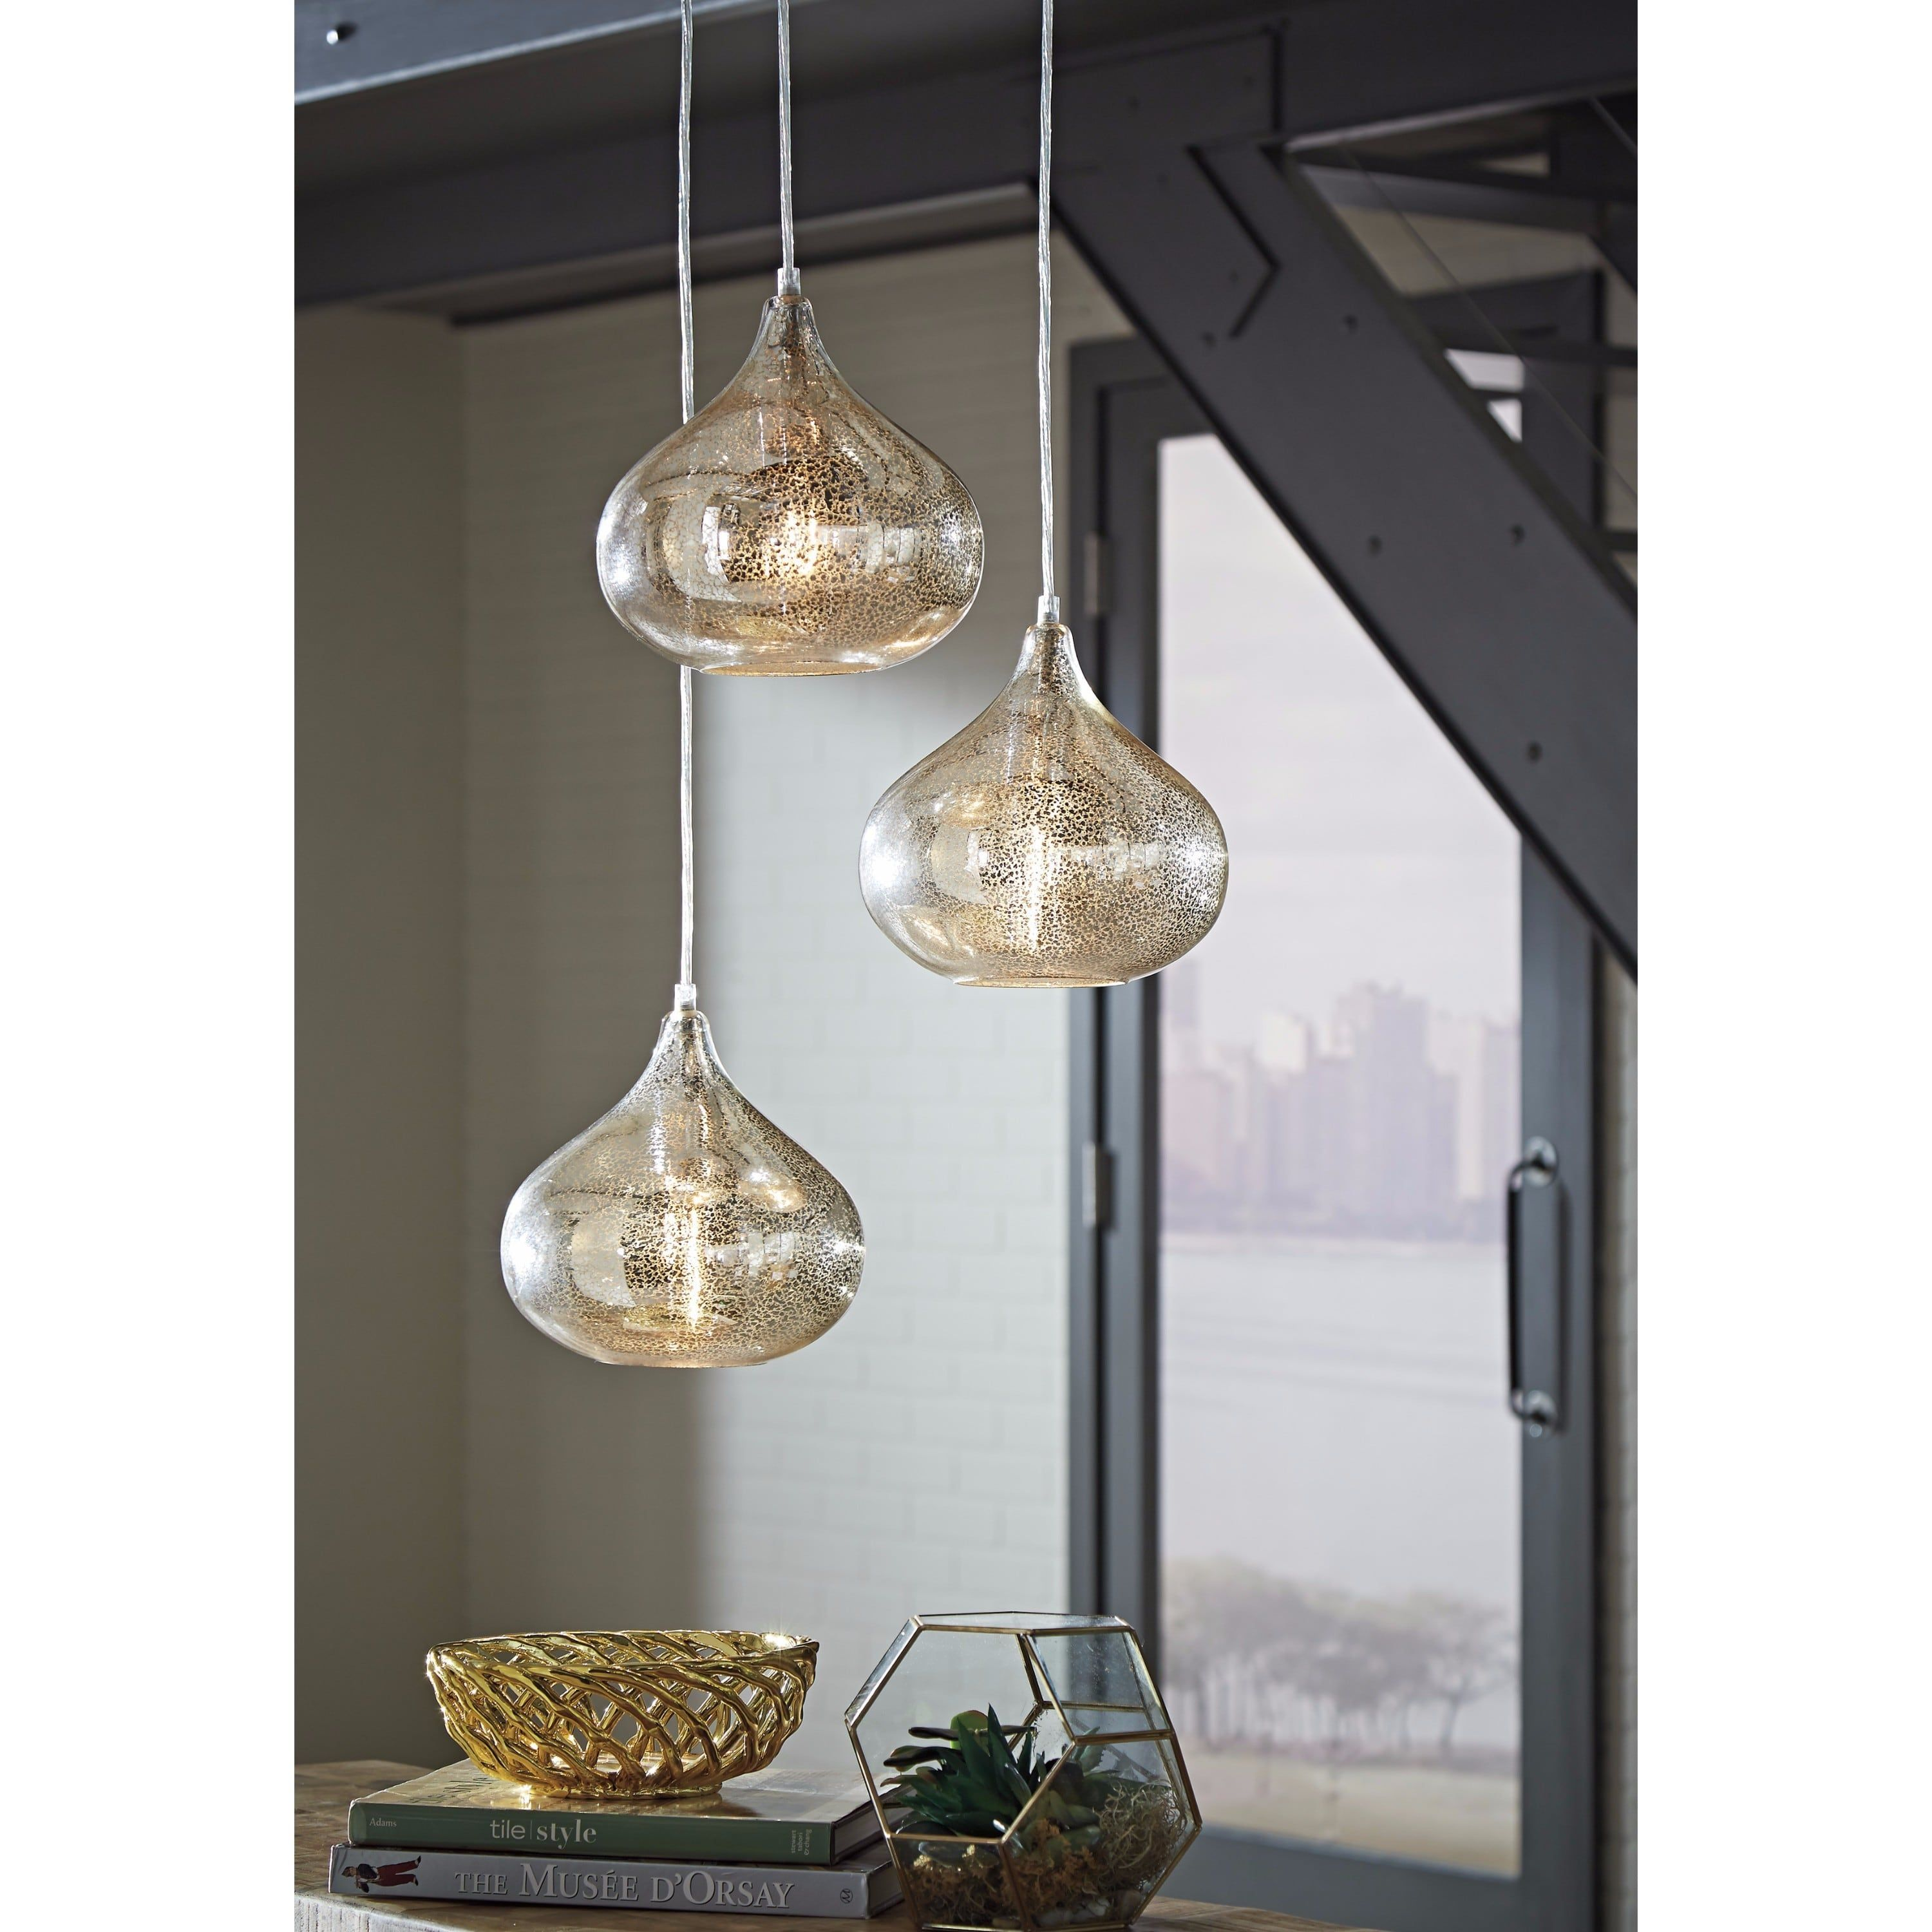 Overstock Com Online Shopping Bedding Furniture Electronics Jewelry Clothing More Glass Pendant Light Mercury Glass Pendant Light Pendant Light